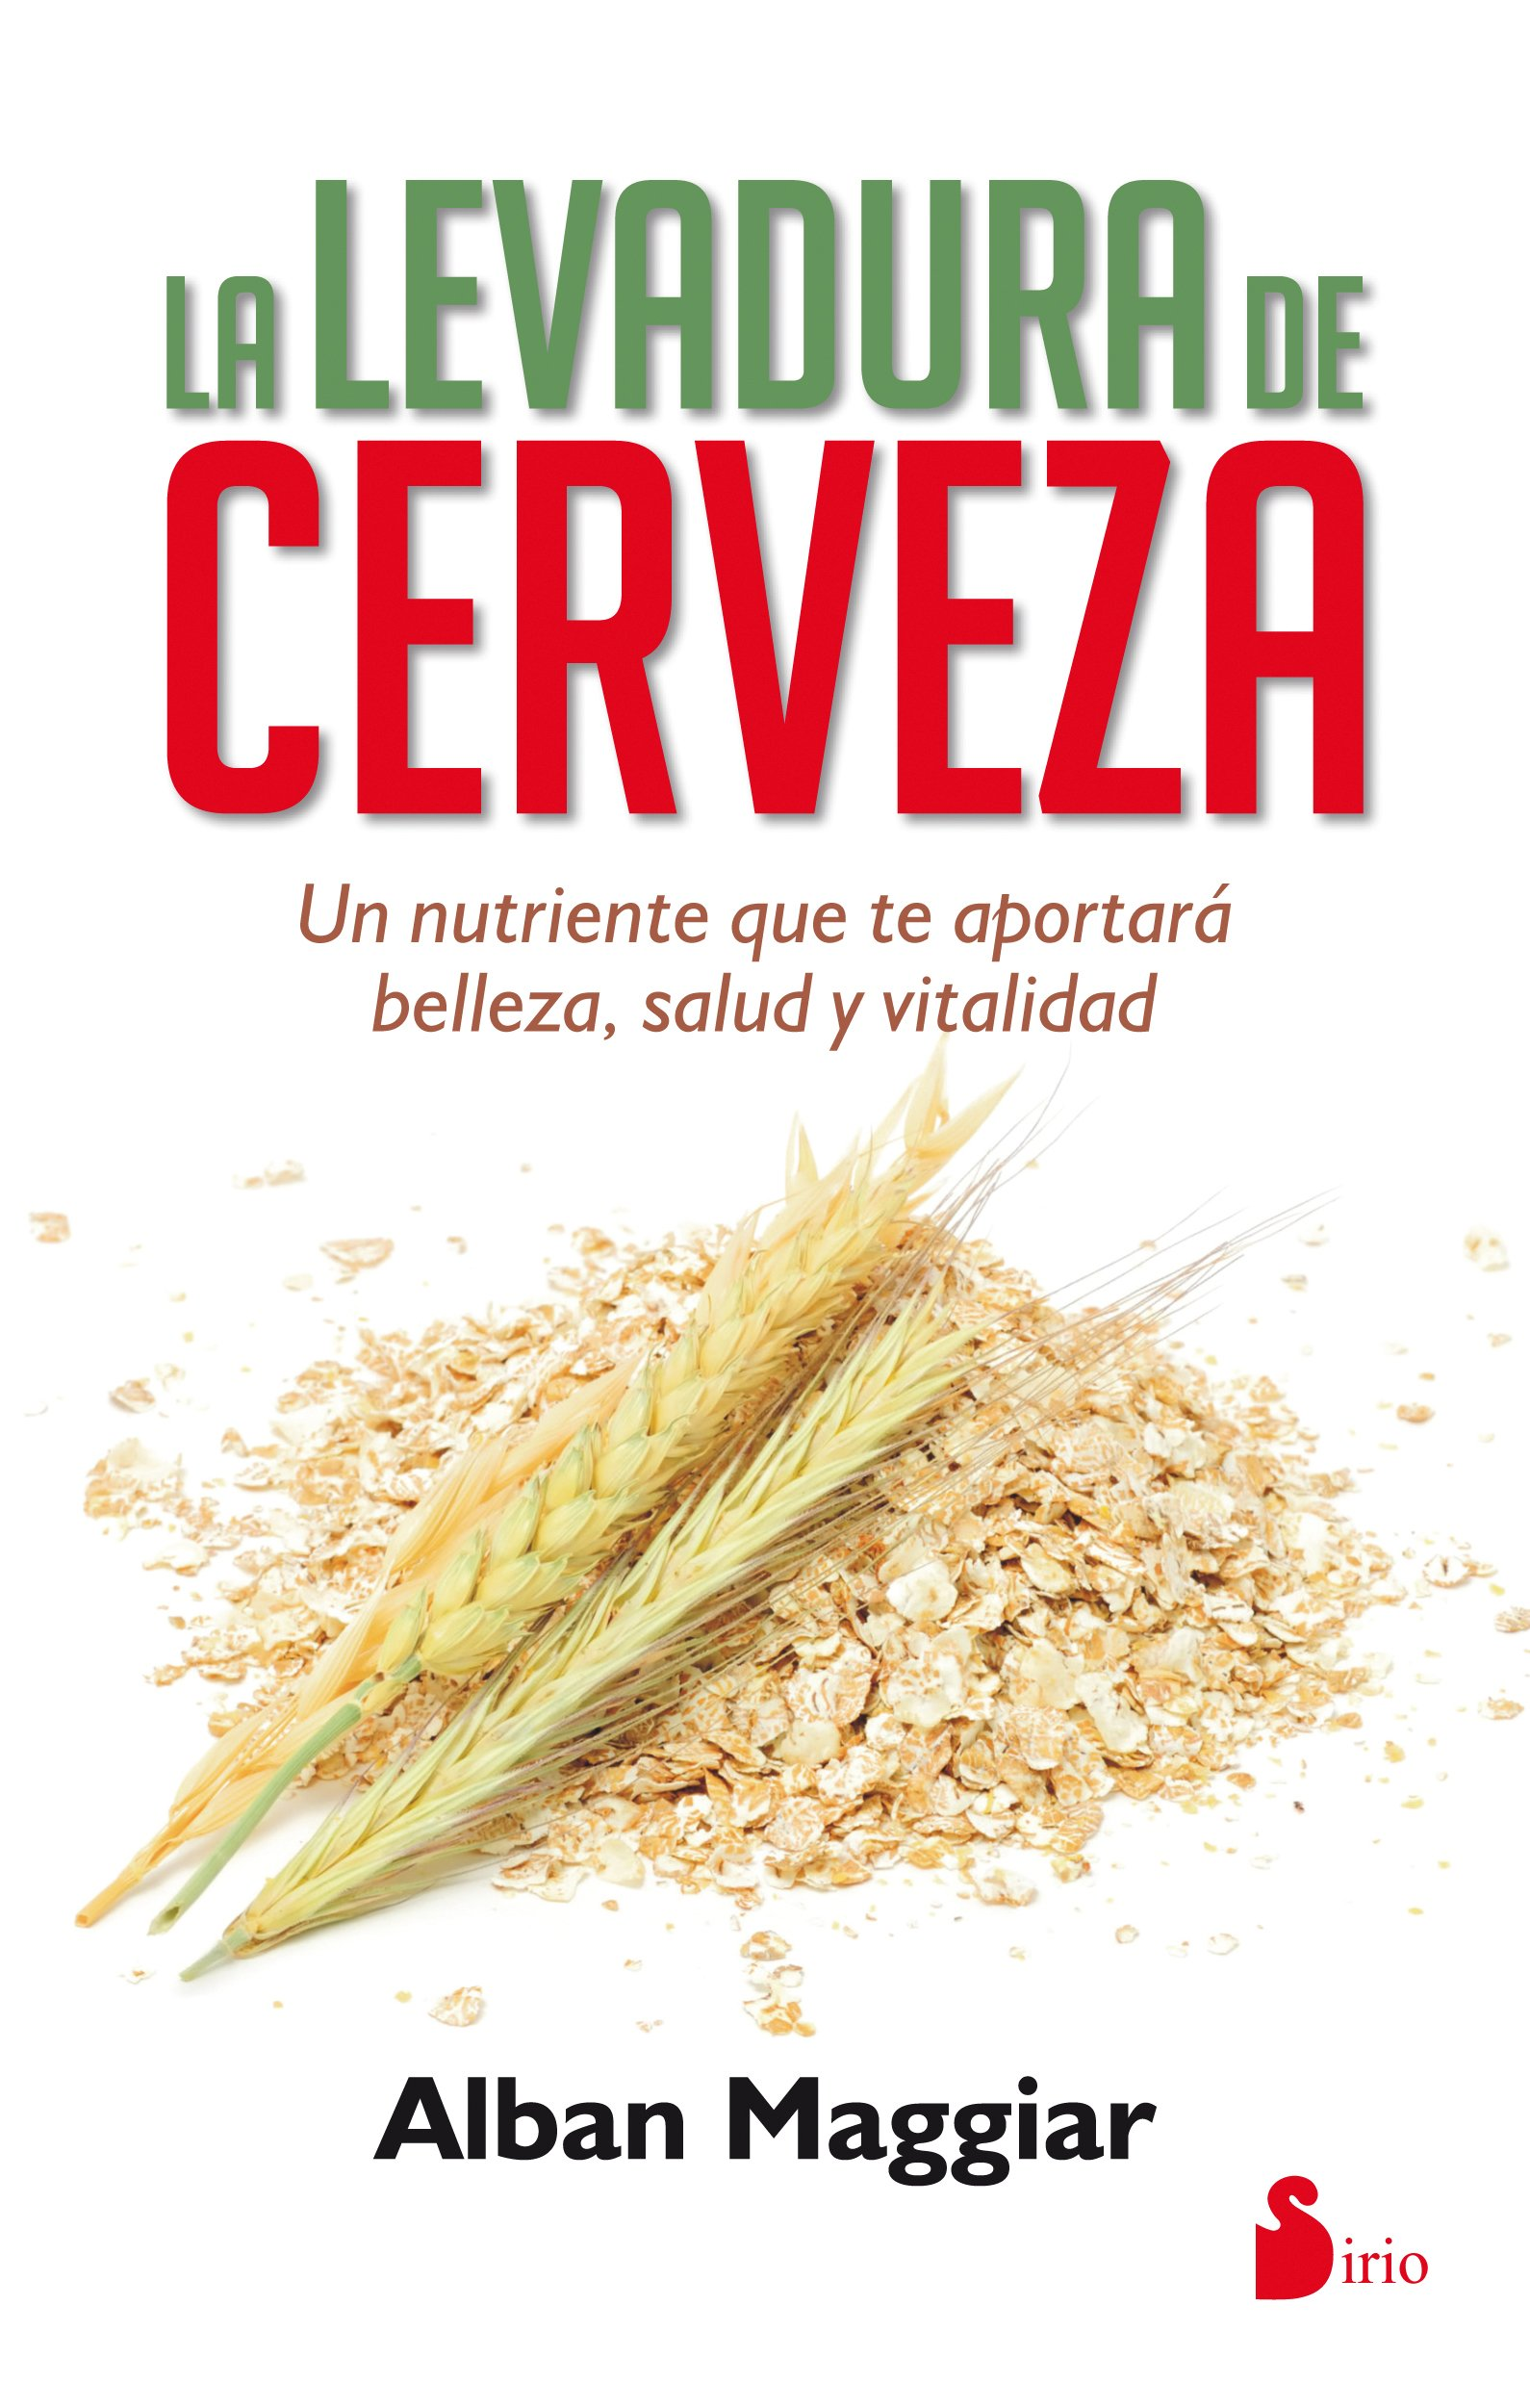 La levadura de cerveza (Spanish Edition): Alban Maggiar: 9788416233717: Amazon.com: Books